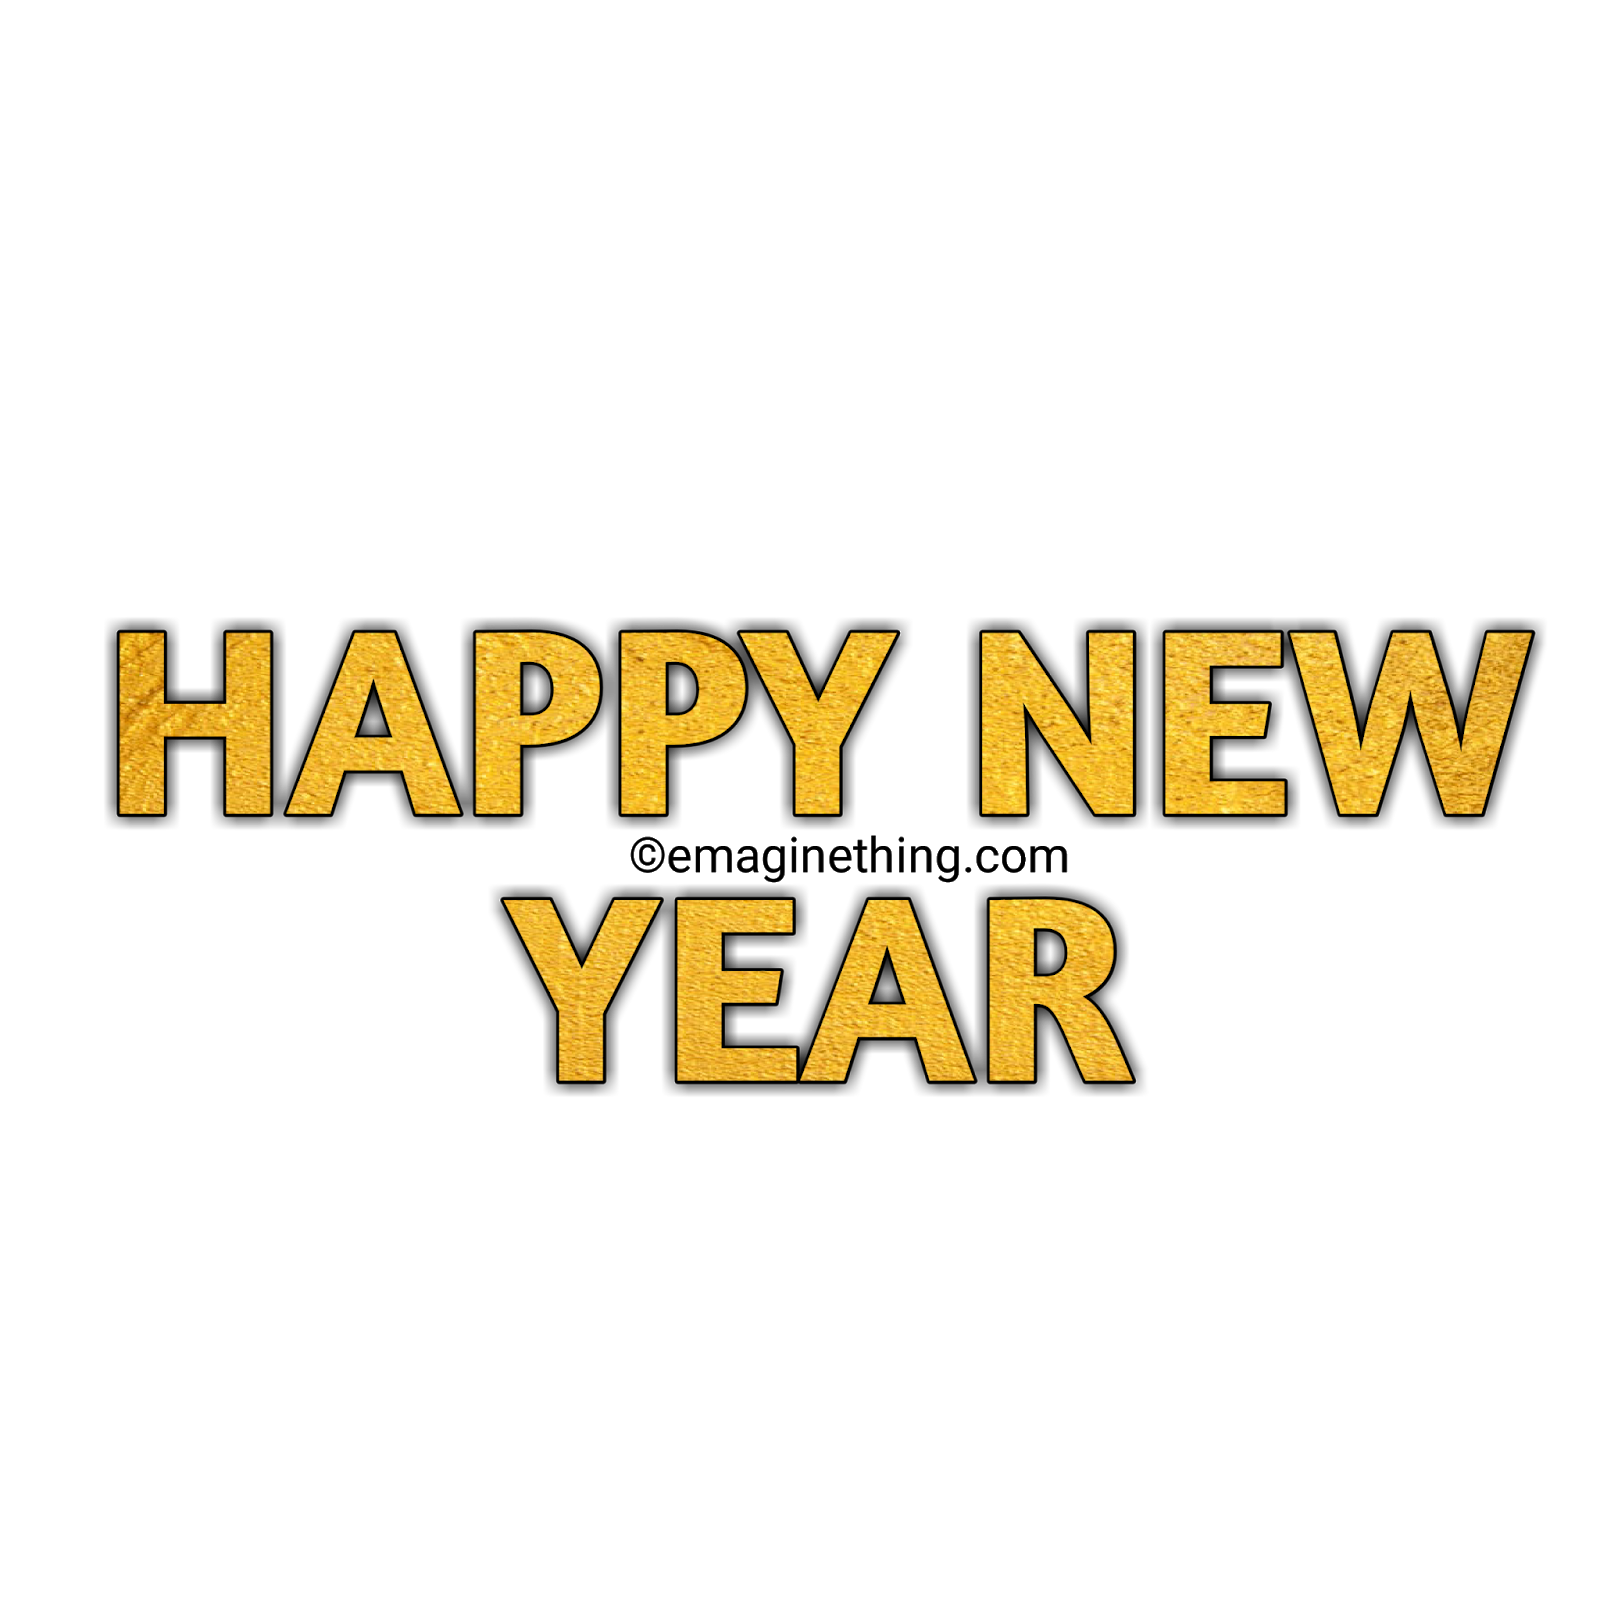 Happy New Year Text Png 24